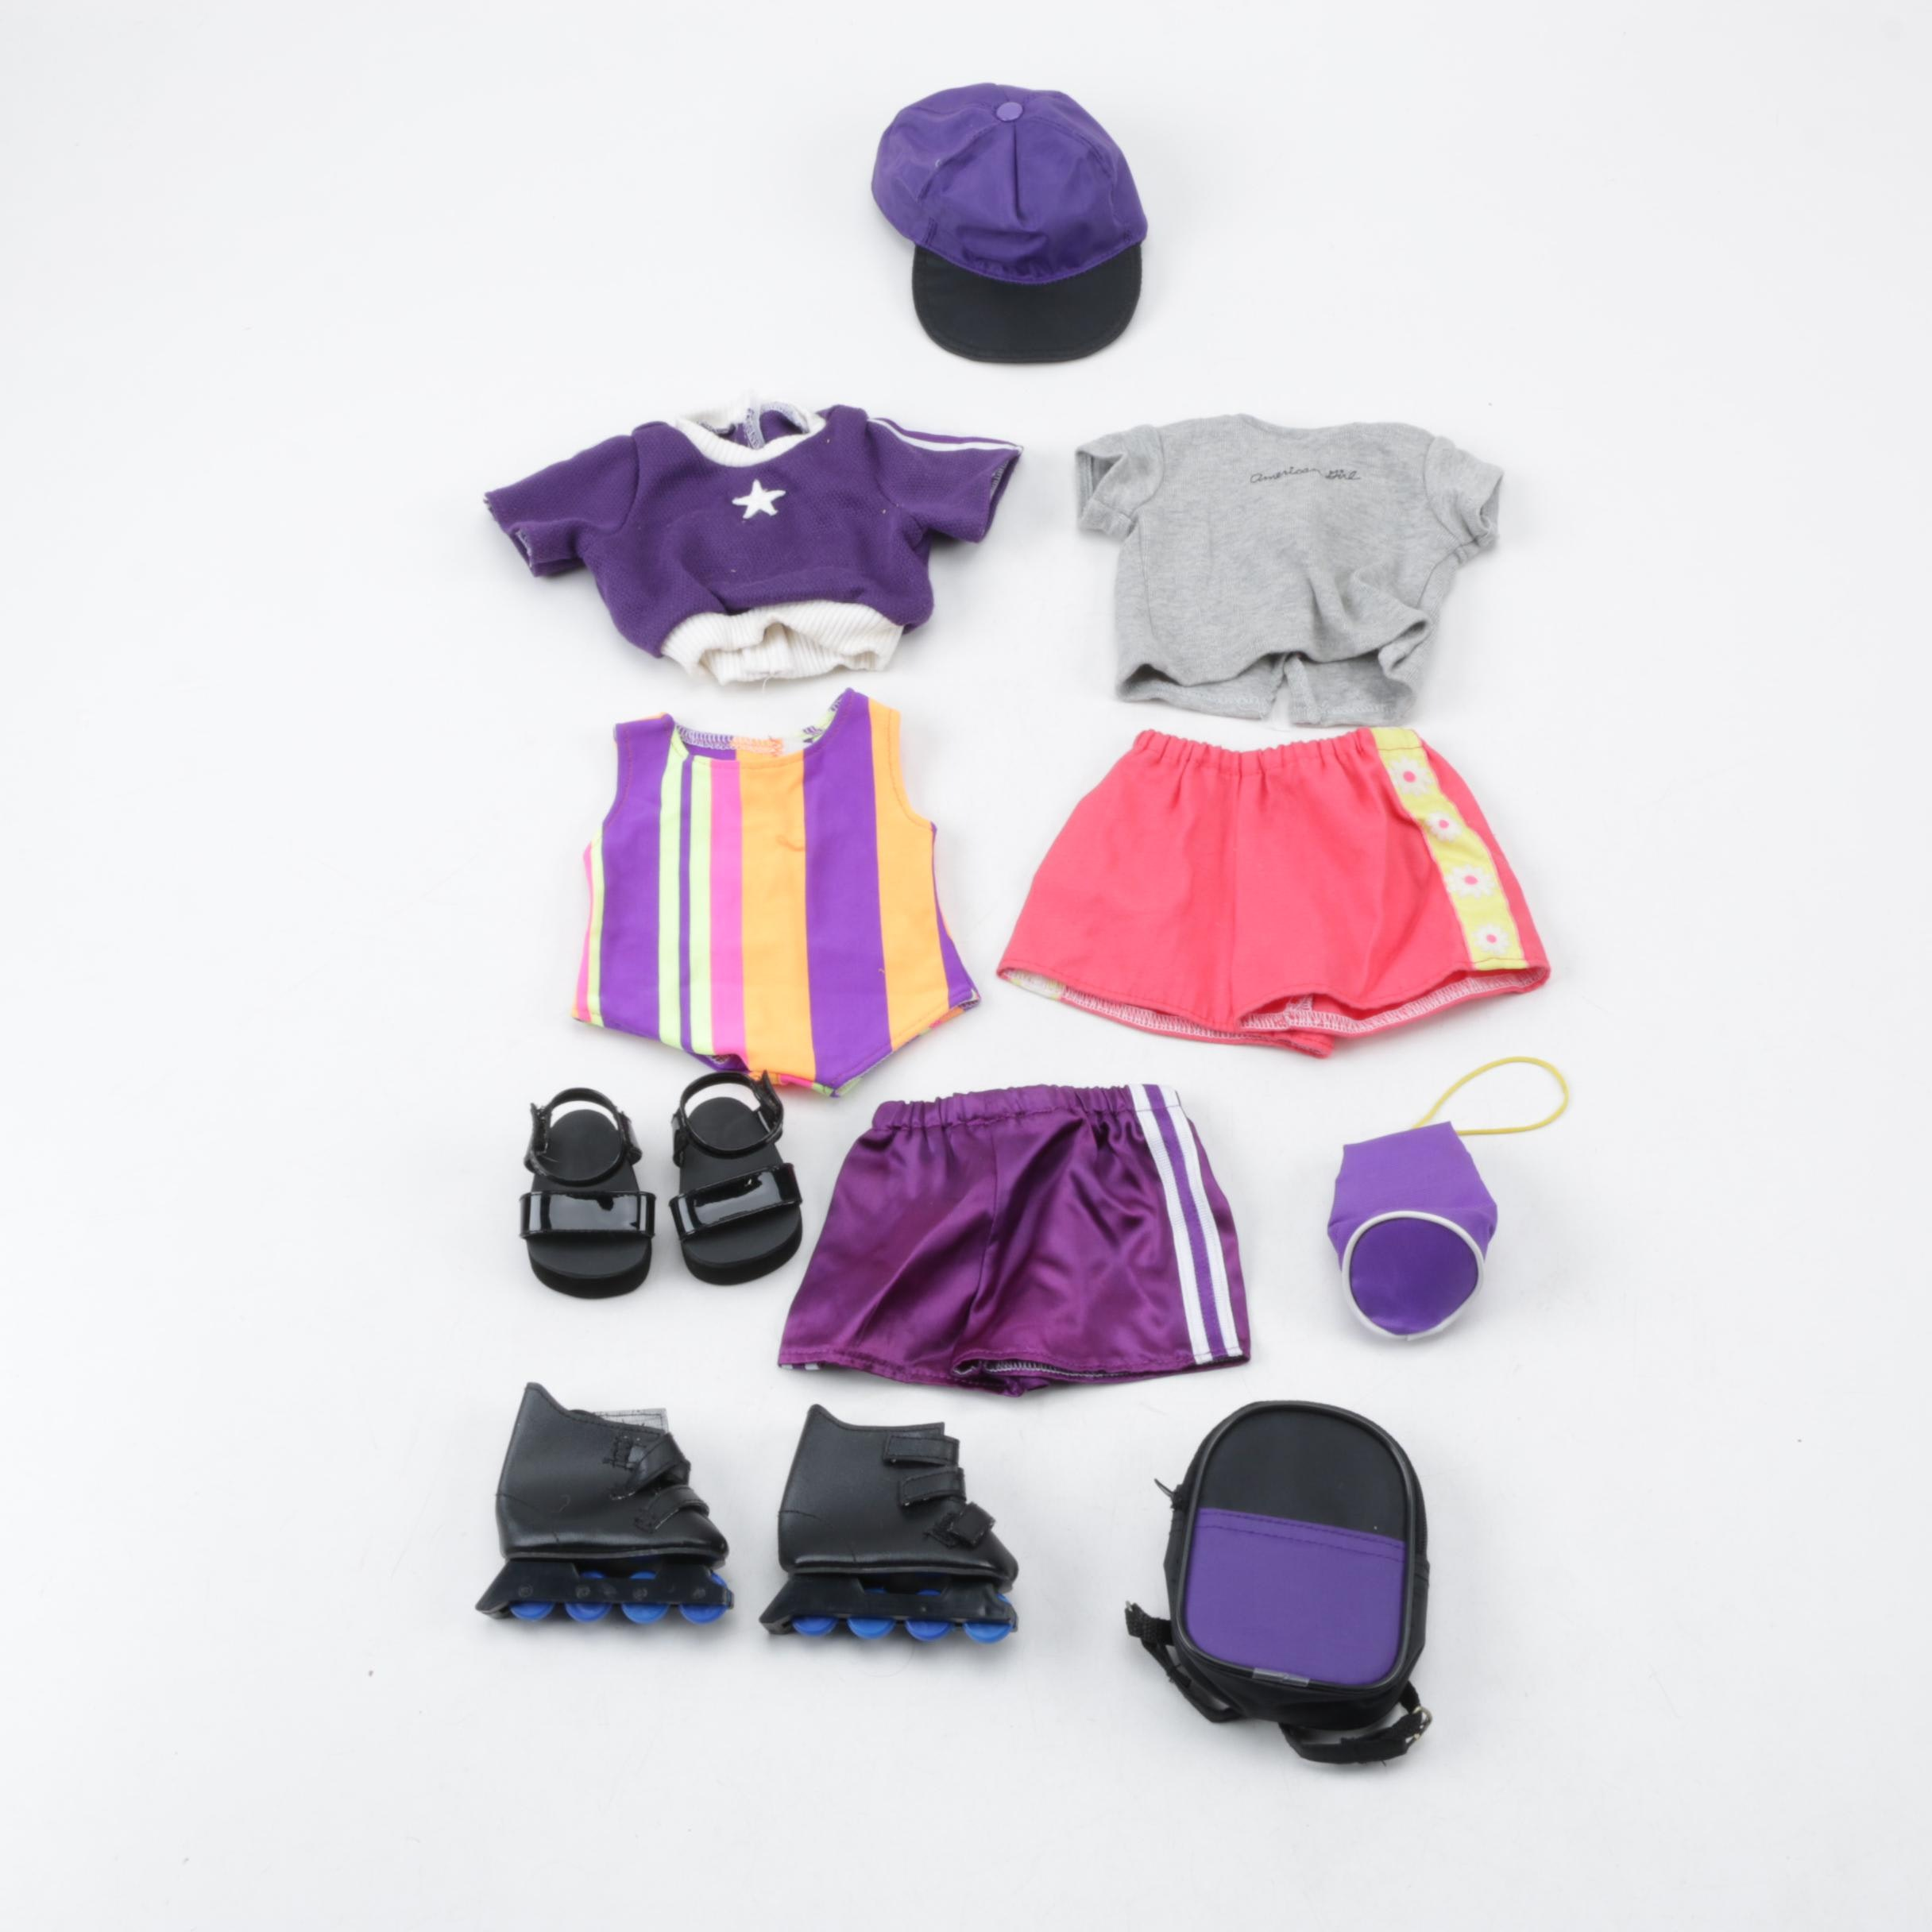 American Girl Athletic Gear and Clothing